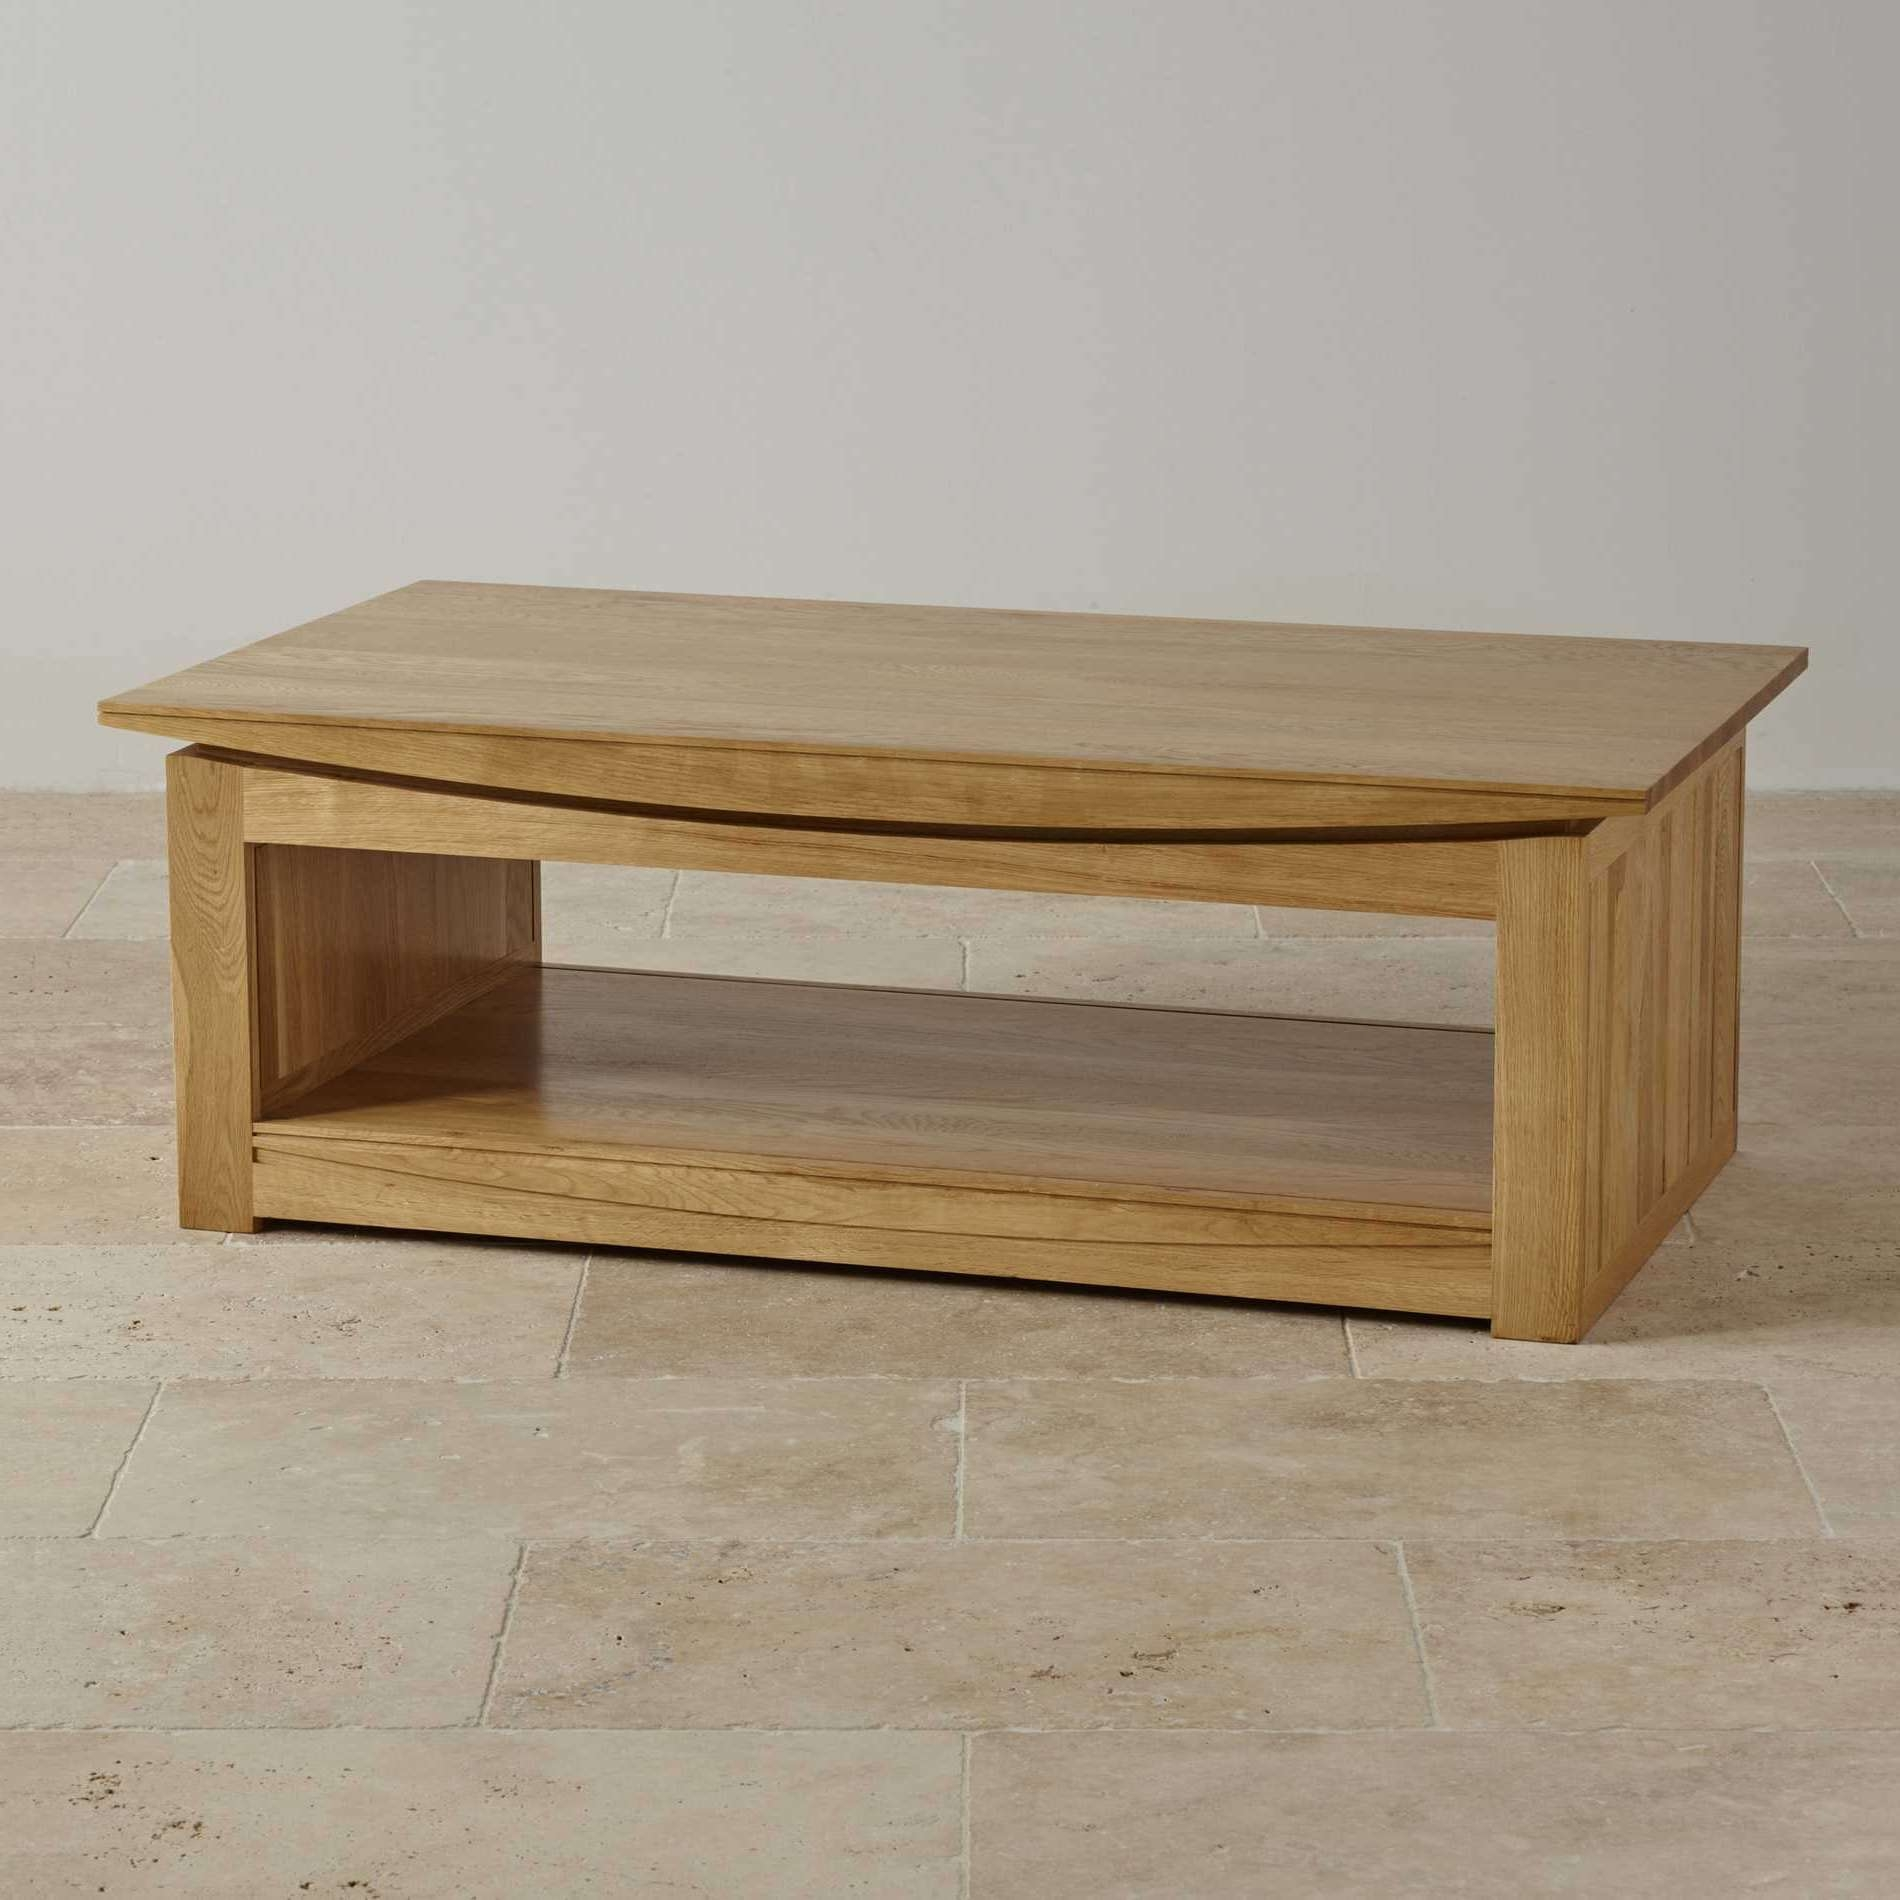 Newest Square Coffee Table Oak For Oak Furniture Land Coffee Table – Tokyo Natural Solid Oak Large (Gallery 19 of 20)